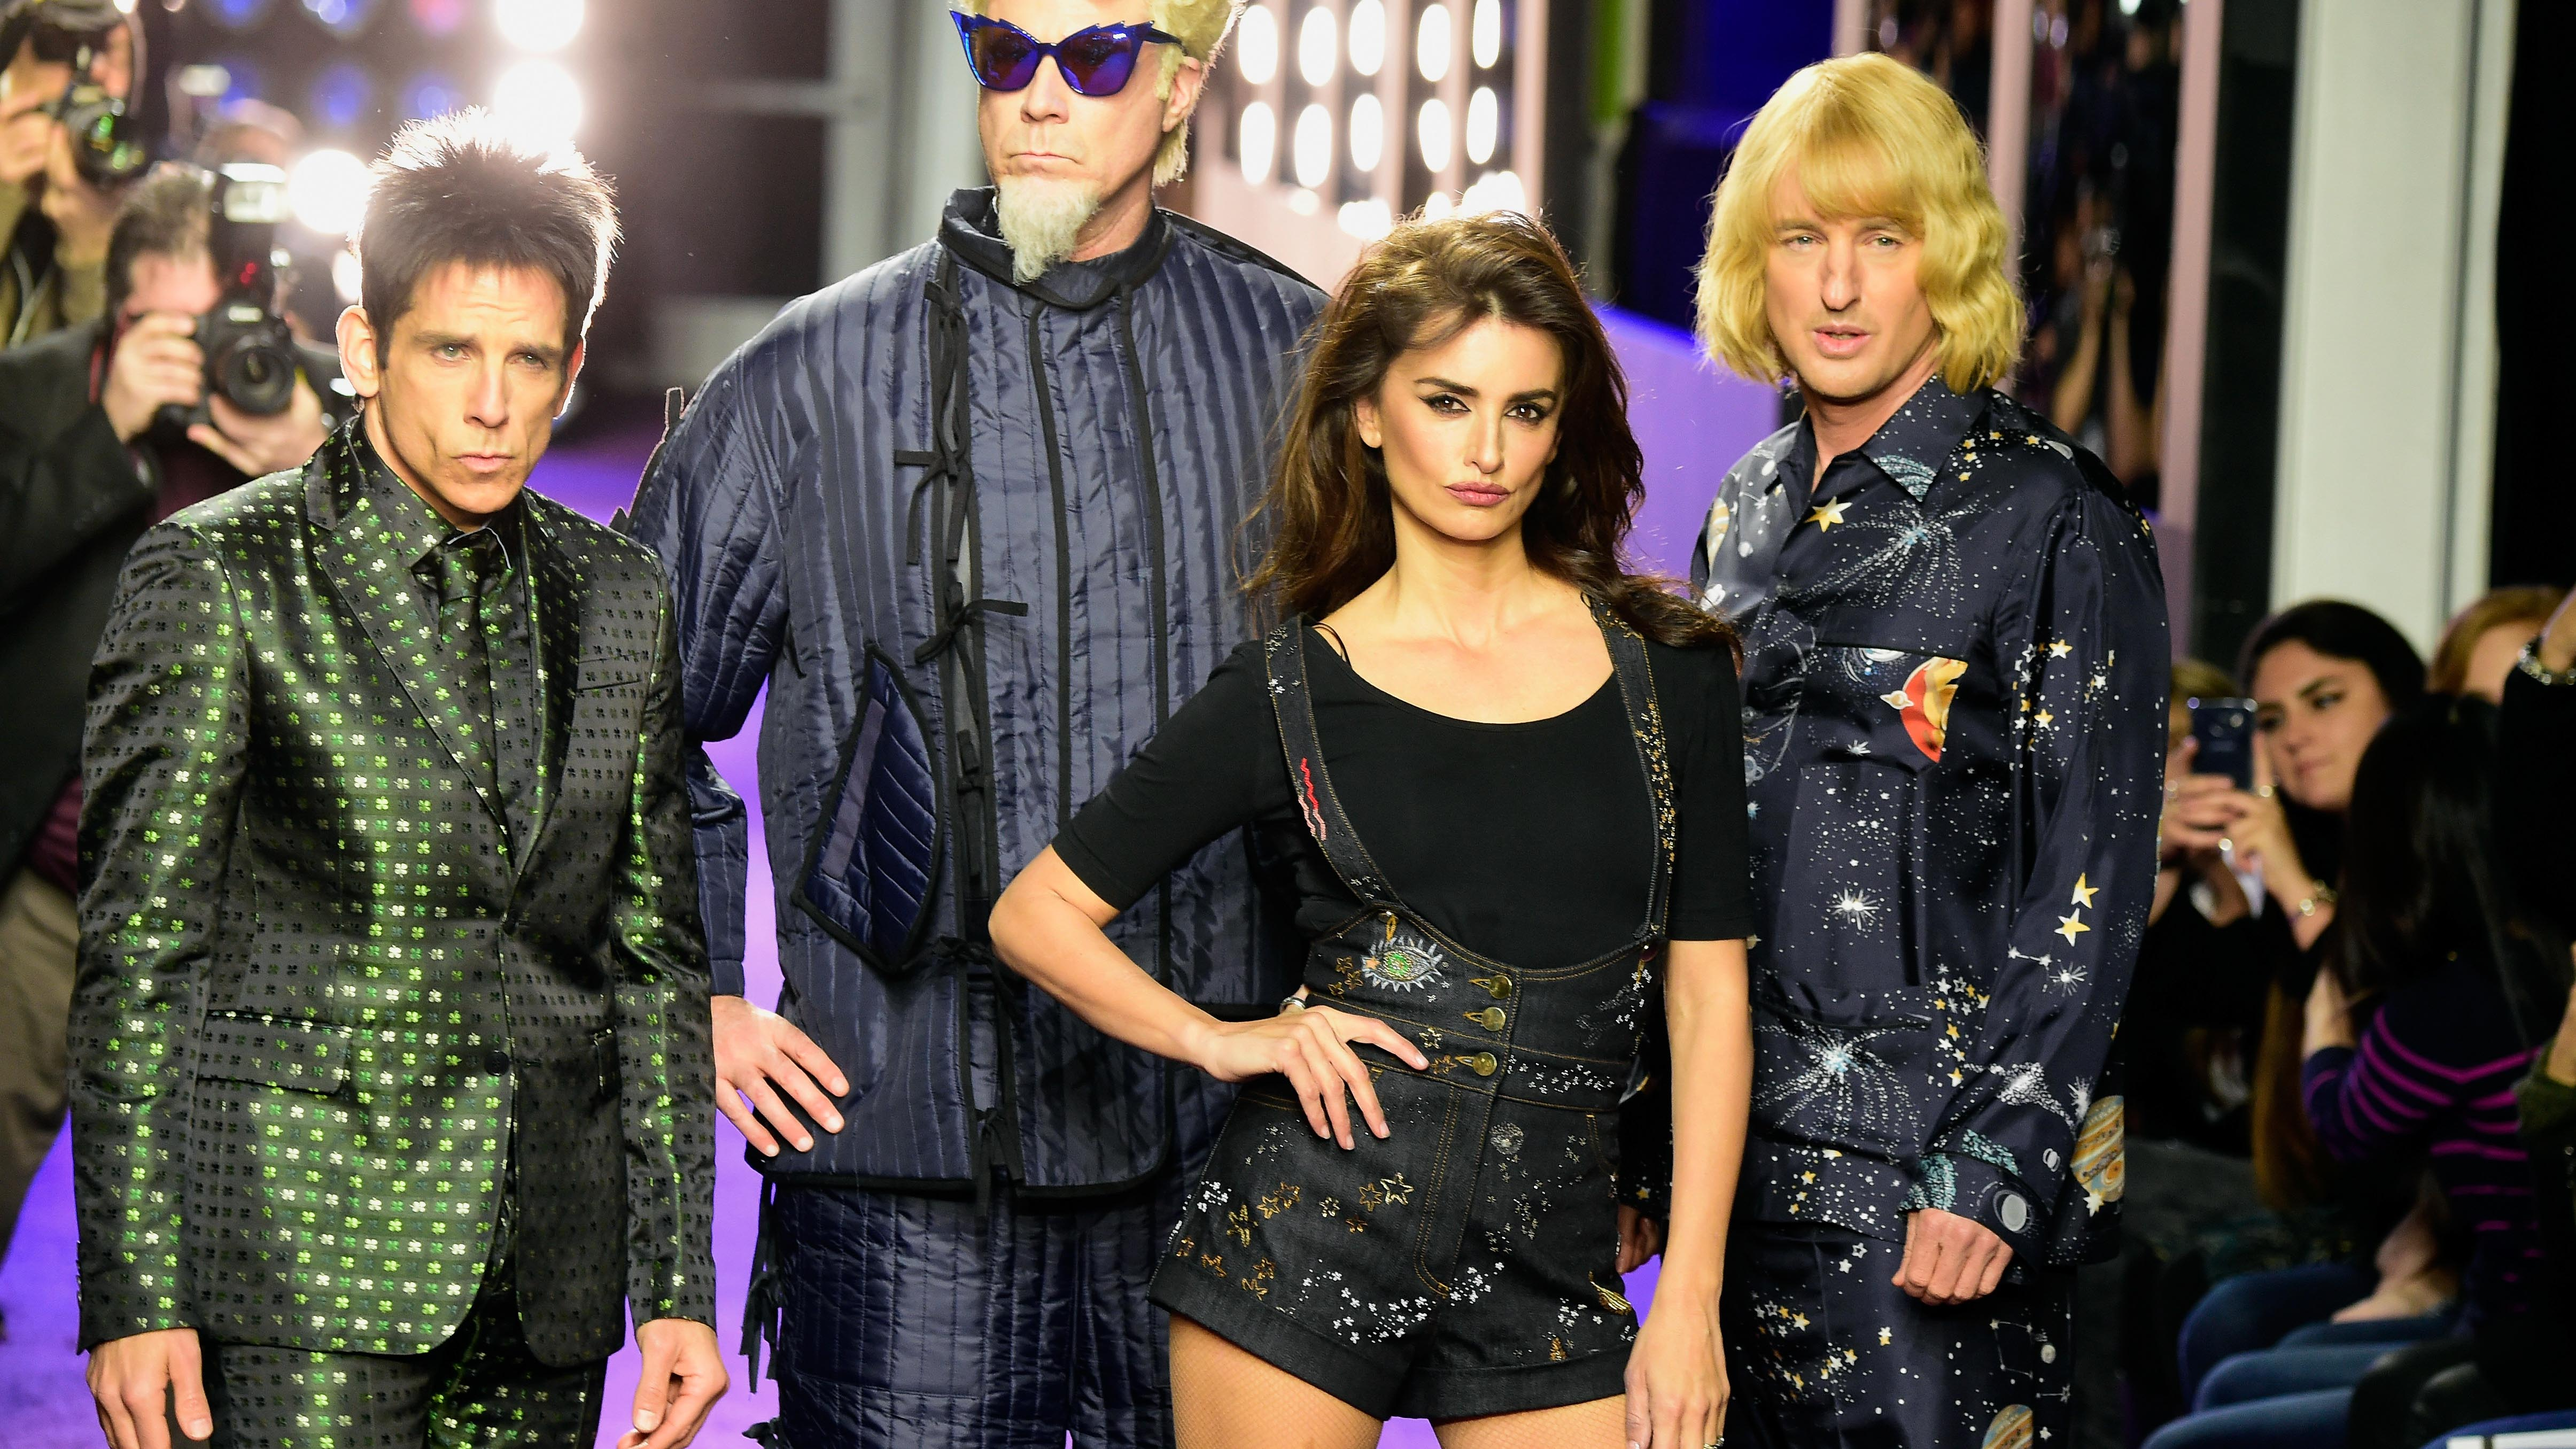 "NEW YORK, NY - FEBRUARY 09:  (L-R) Actors Ben Stiller, Will Ferrell, Penelope Cruz and  Owen Wilson walk the runway during the ""Zoolander No. 2"" World Premiere at Alice Tully Hall on February 9, 2016 in New York City.  (Photo by Frazer Harrison/Getty Images for Paramount) *** Local Caption *** Penelope Cruz;Ben Stiller;Owen Wilson;Will Ferrell"